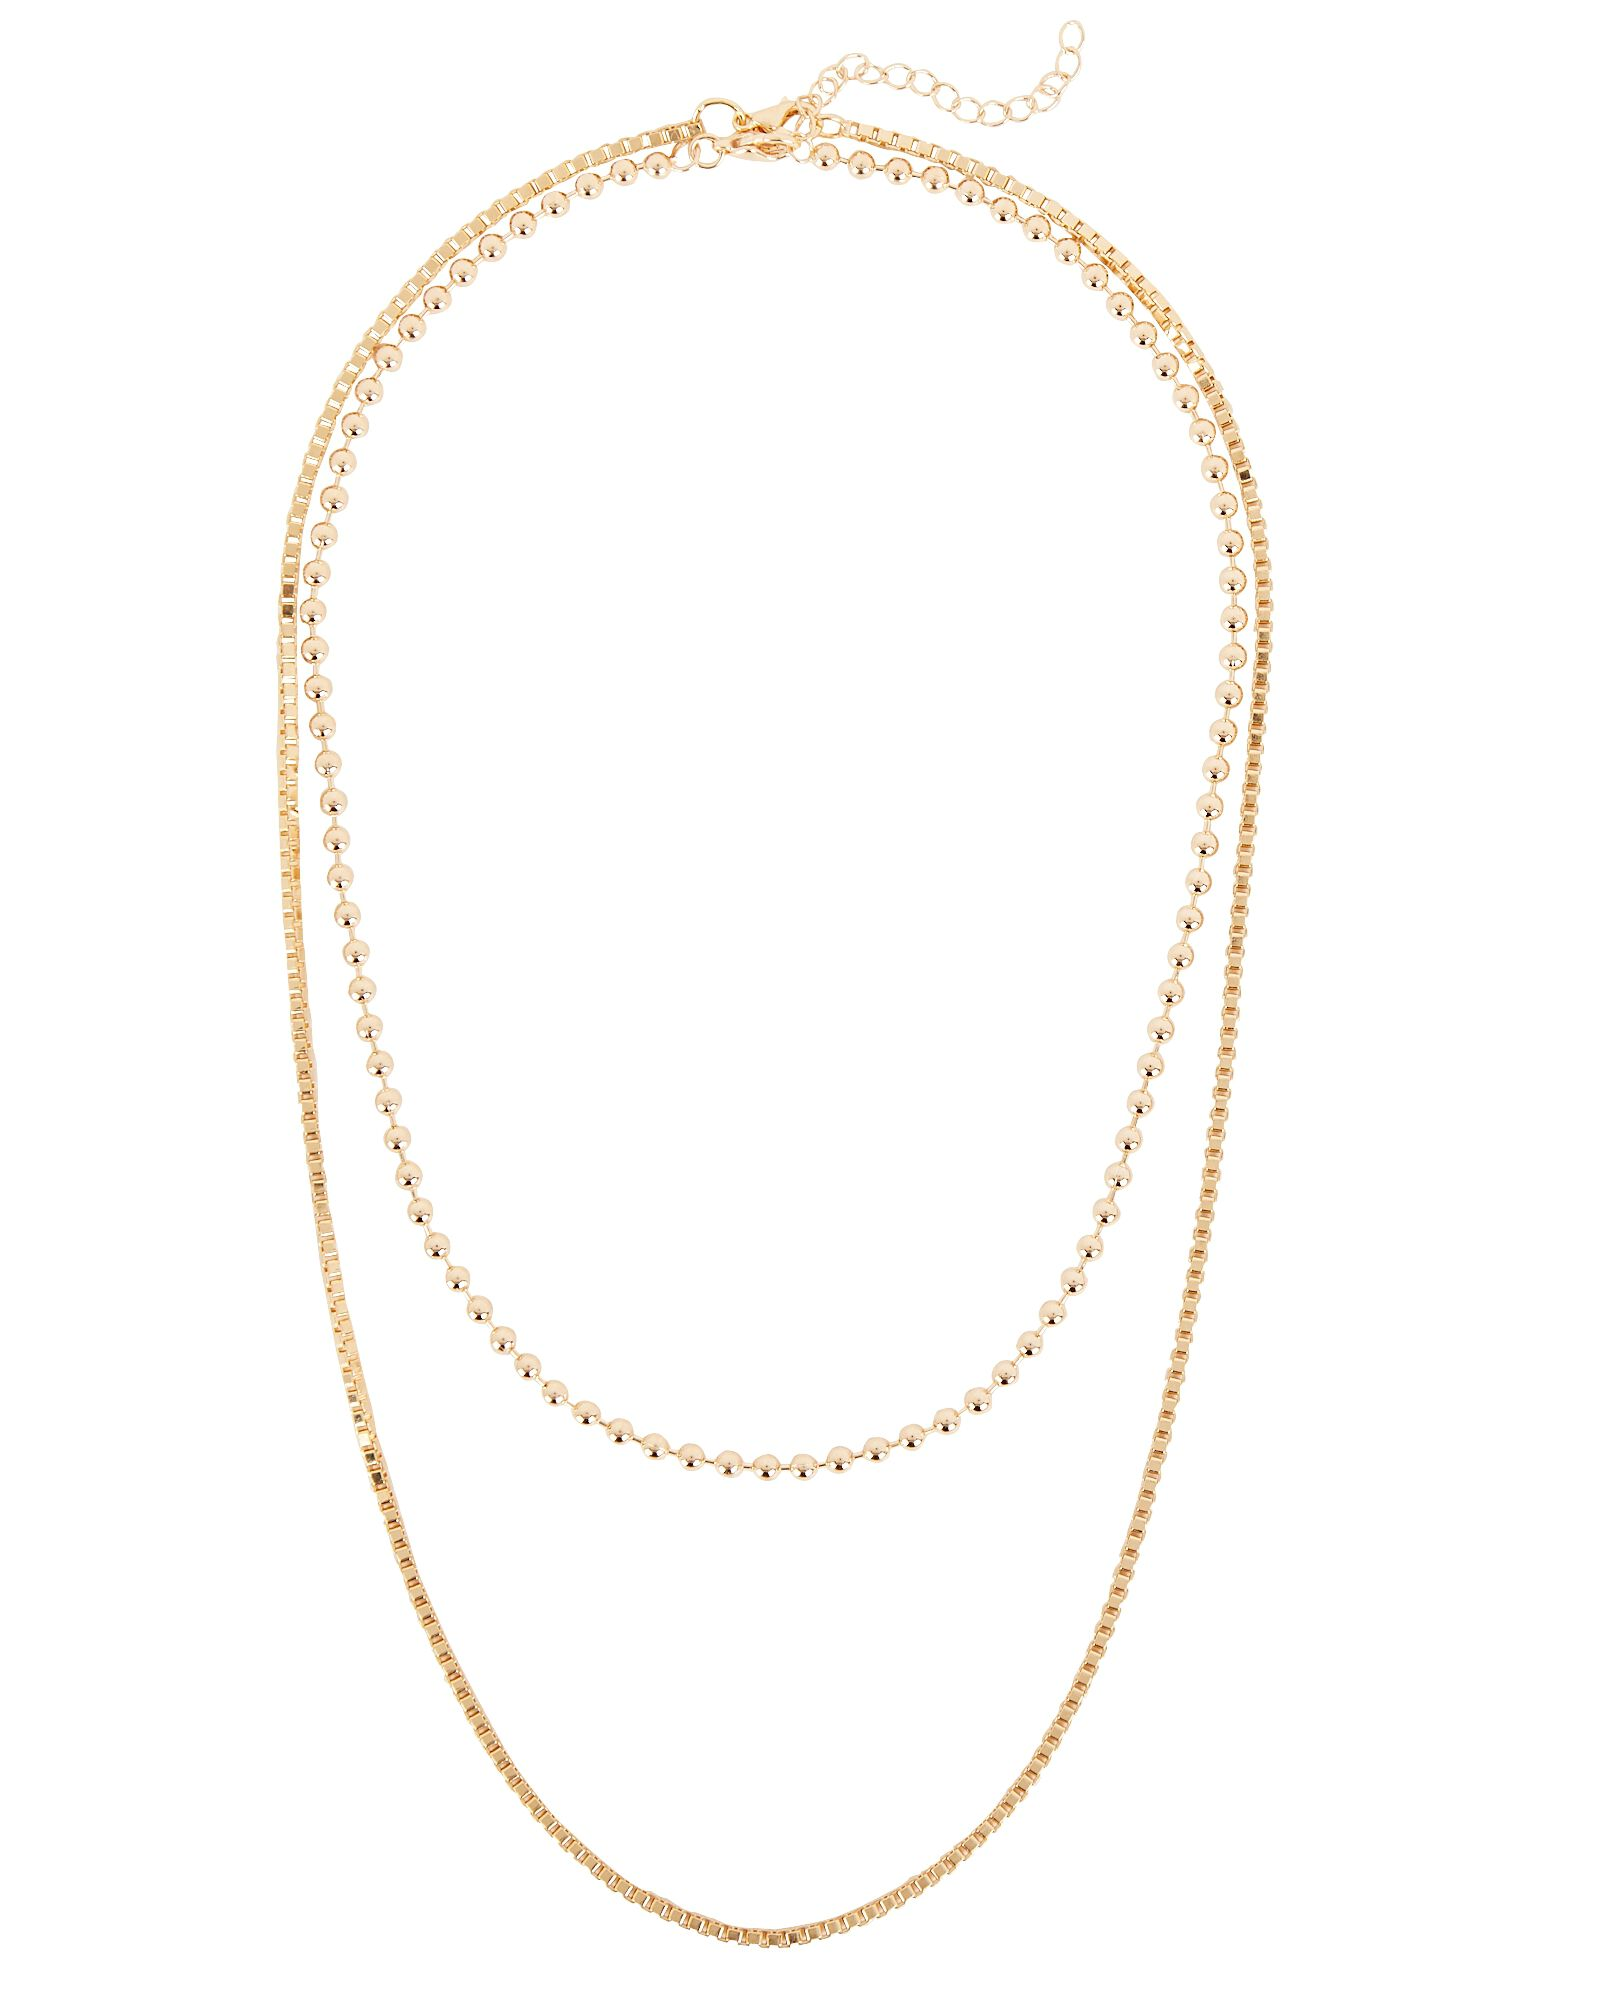 Paige Layered Chain Necklace, GOLD, hi-res